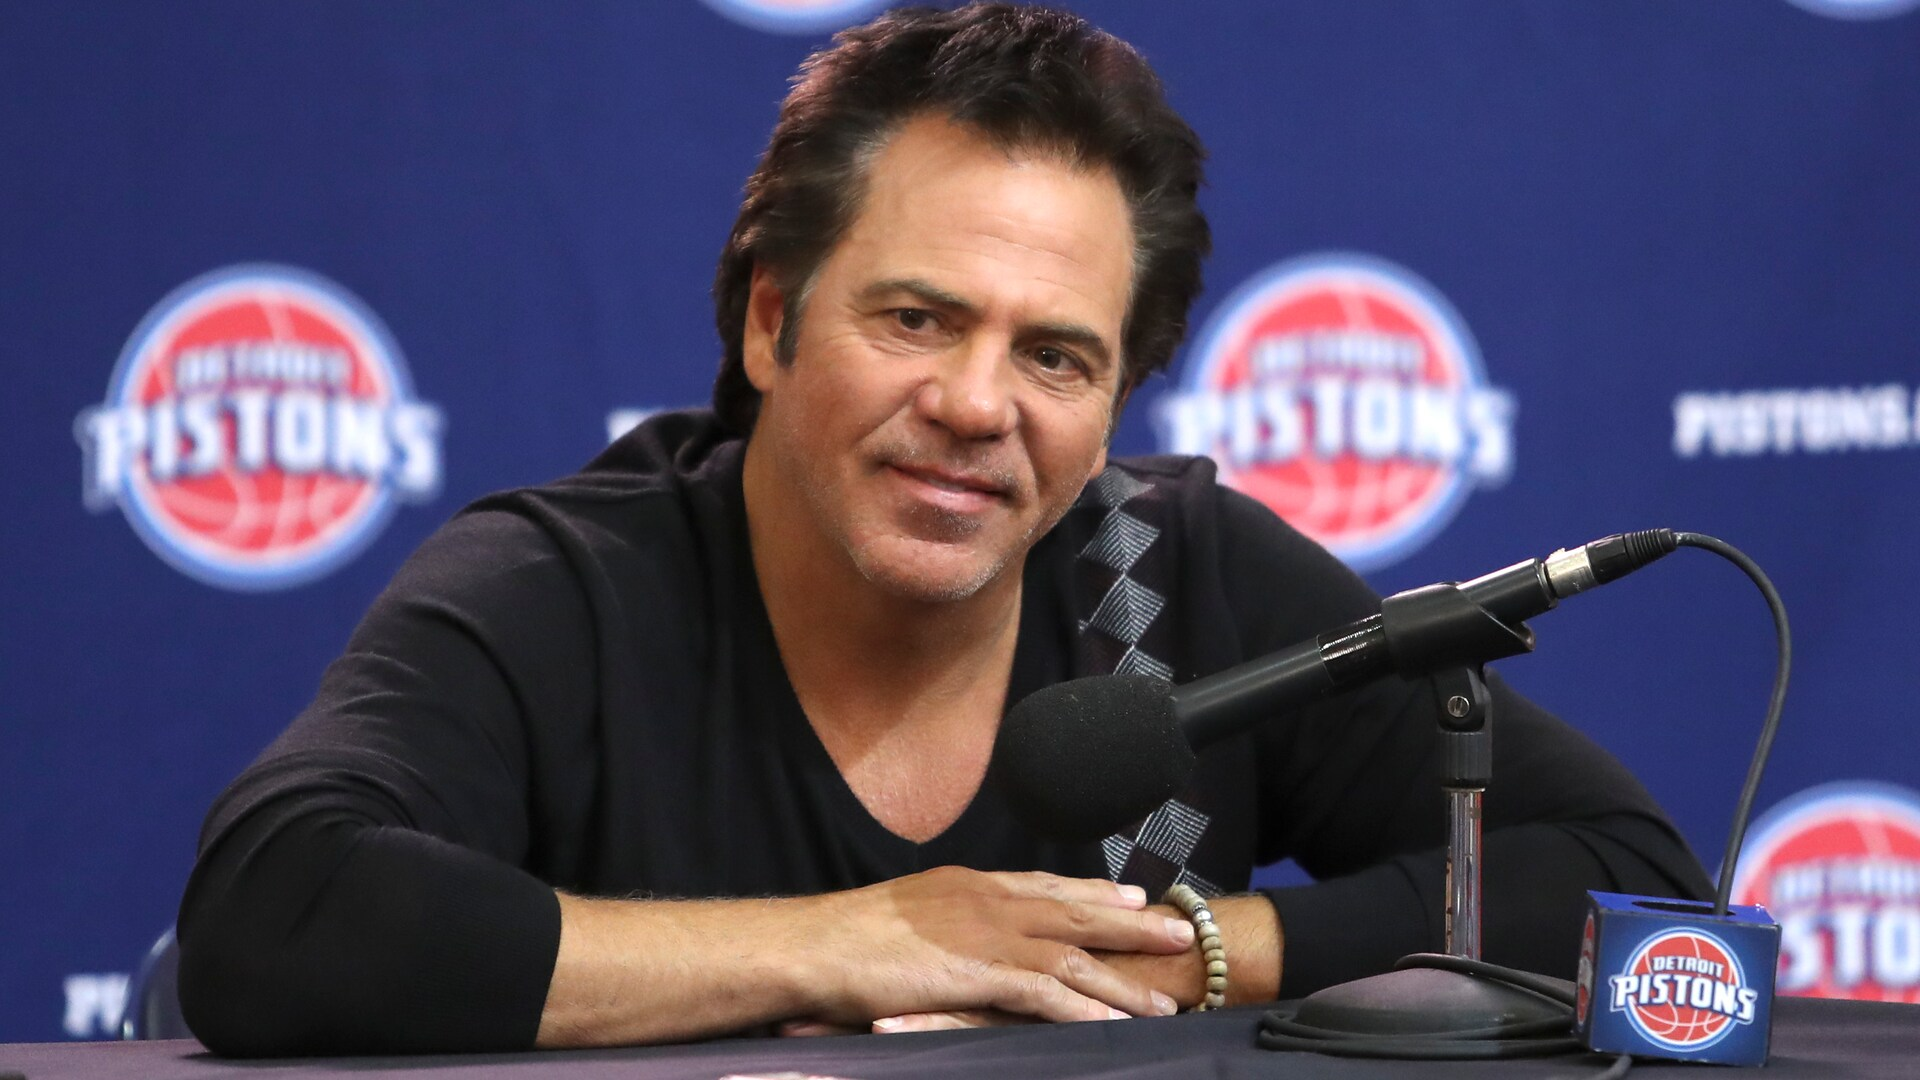 Pistons owner Tom Gores on team: 'We've got a lot of work to do'